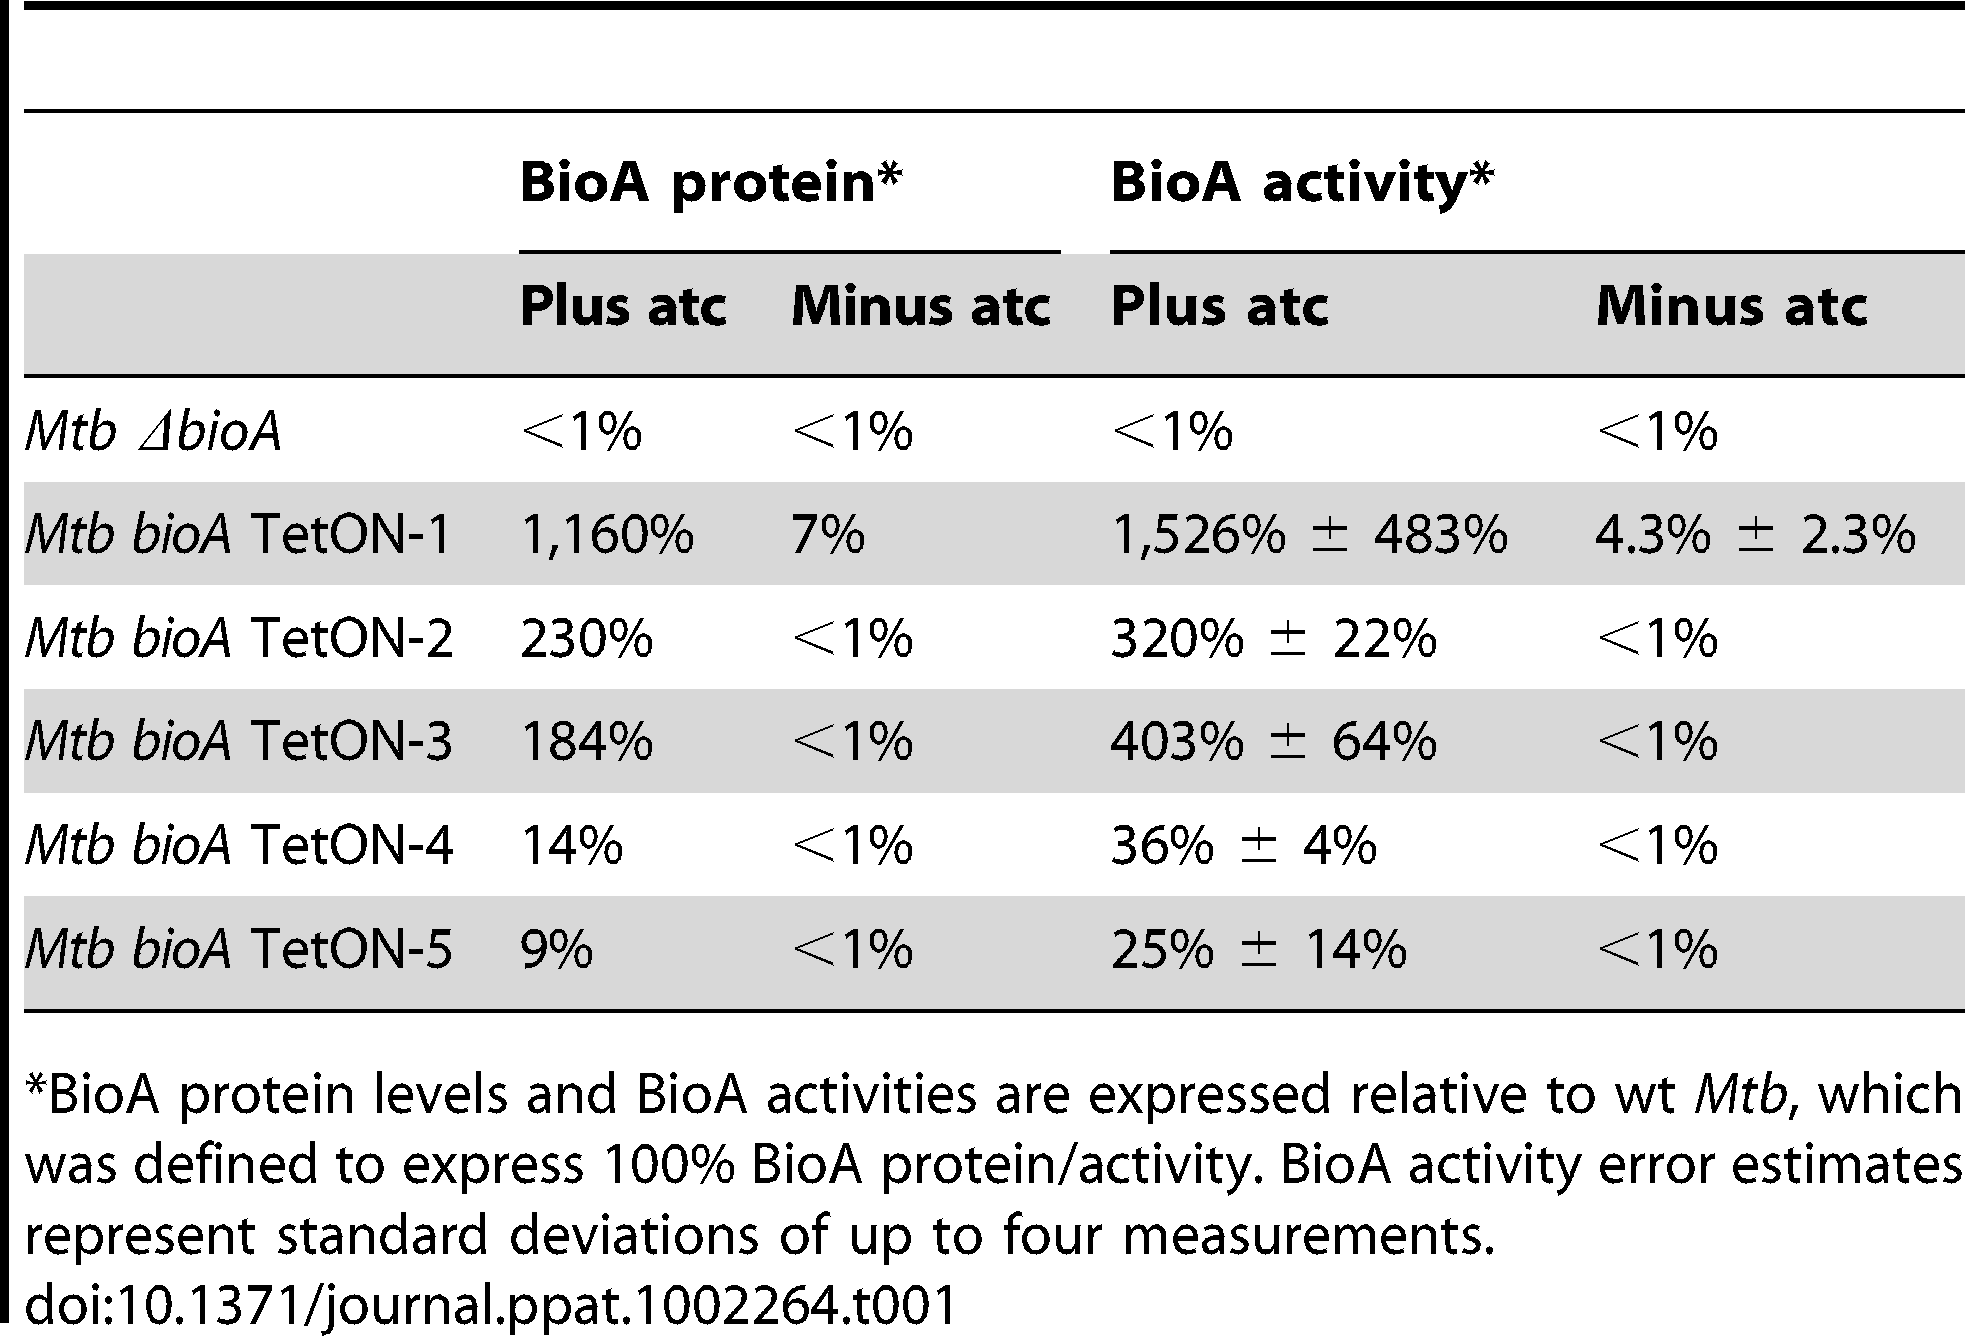 Relative BioA protein levels and activities.